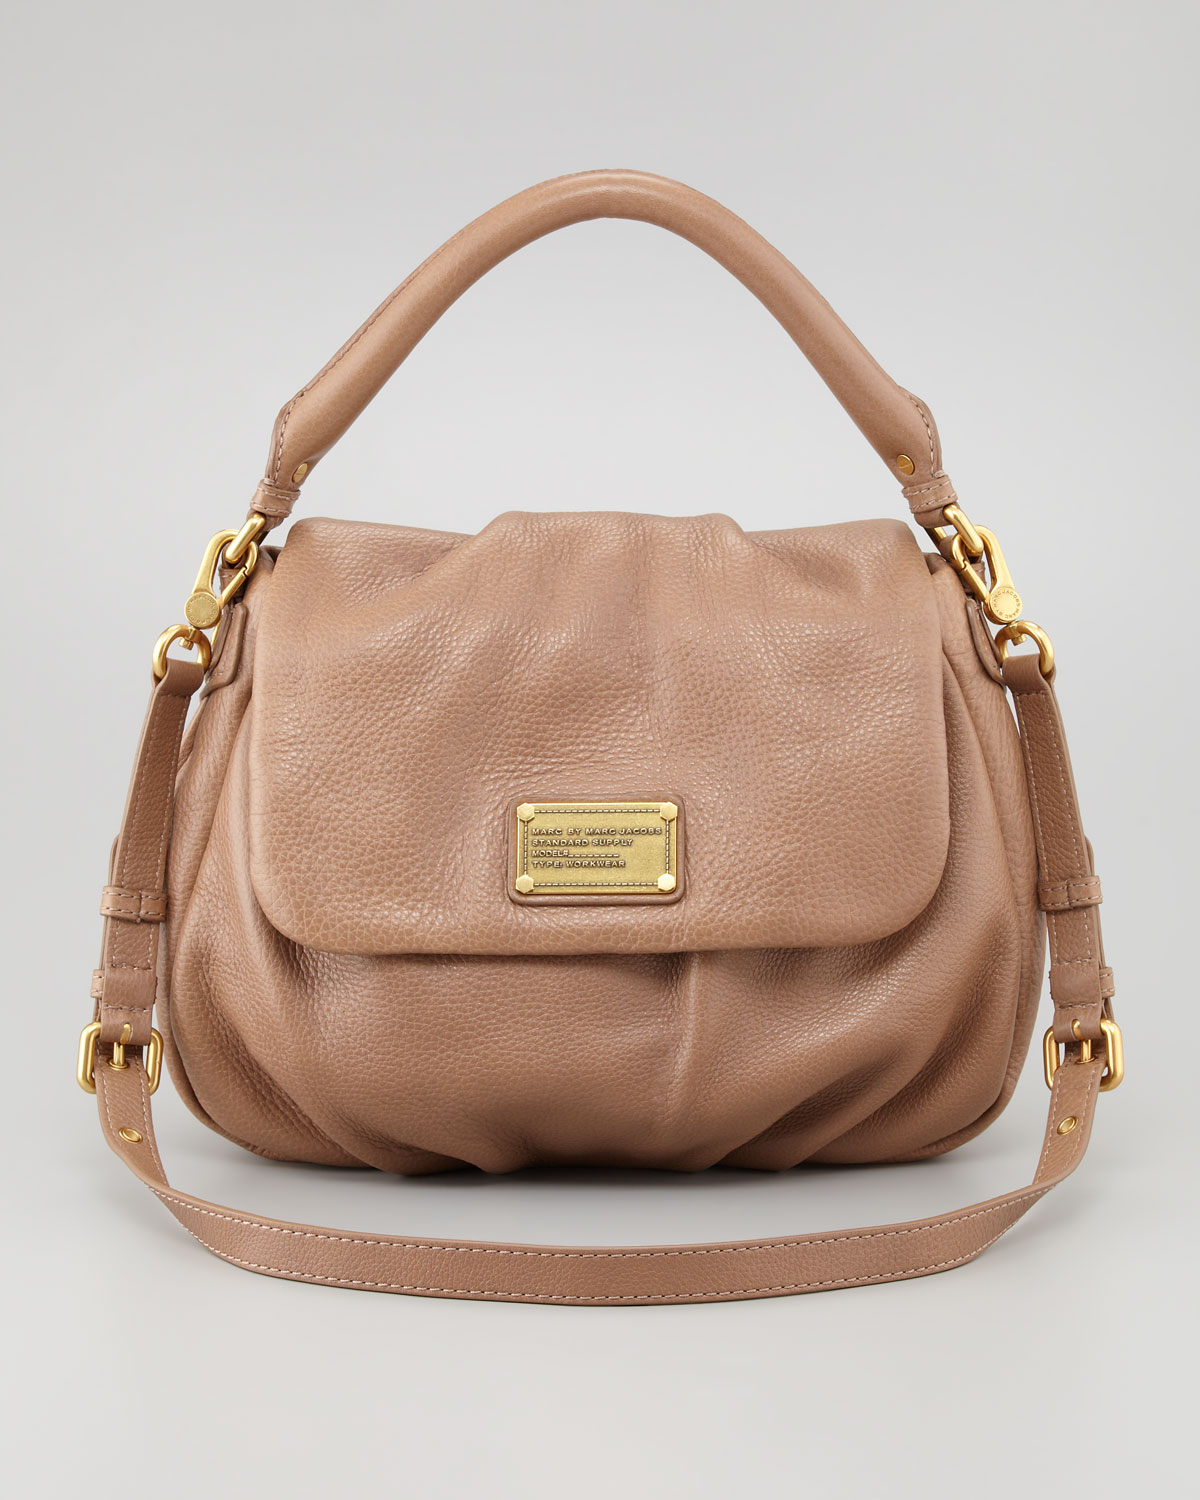 Marc by marc jacobs Classic Q Lil Ukita Satchel Bag Praline in ...